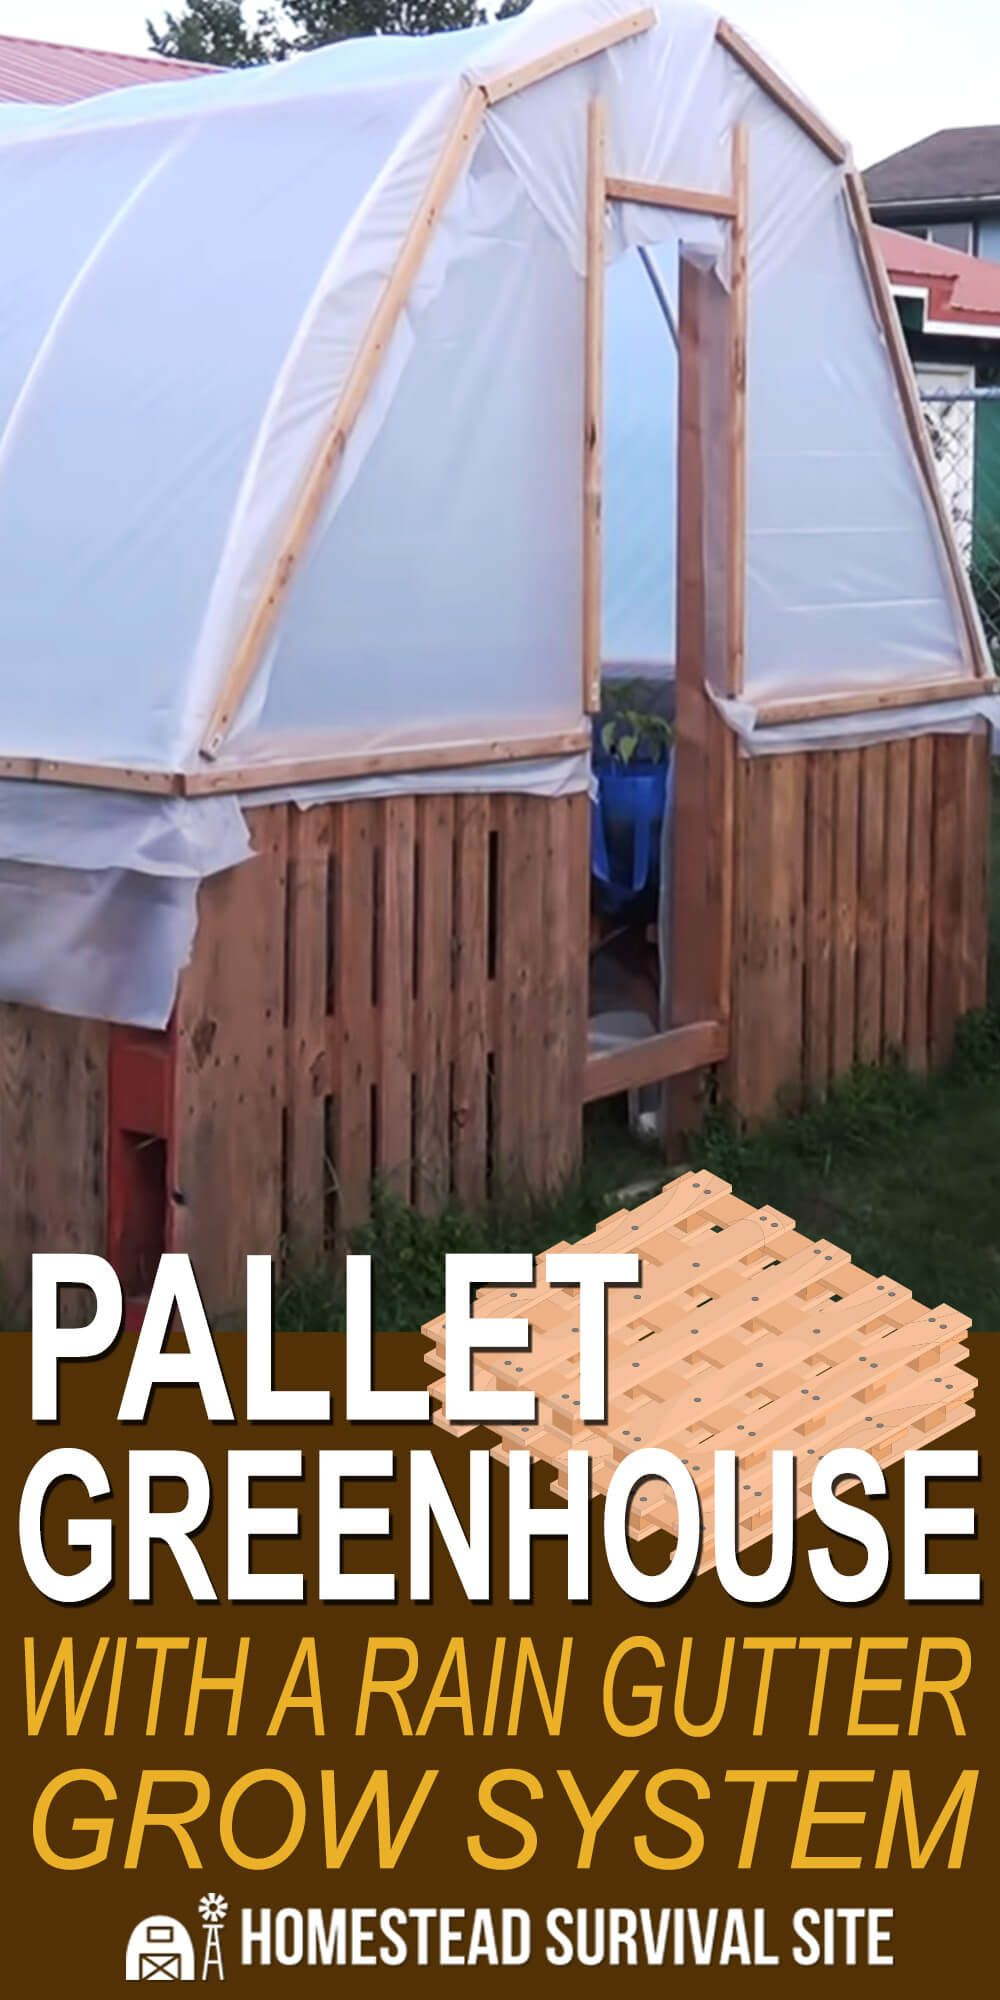 Pallet Greenhouse With A Rain Gutter Grow System Pallet Greenhouse Grow System Rain Gutters